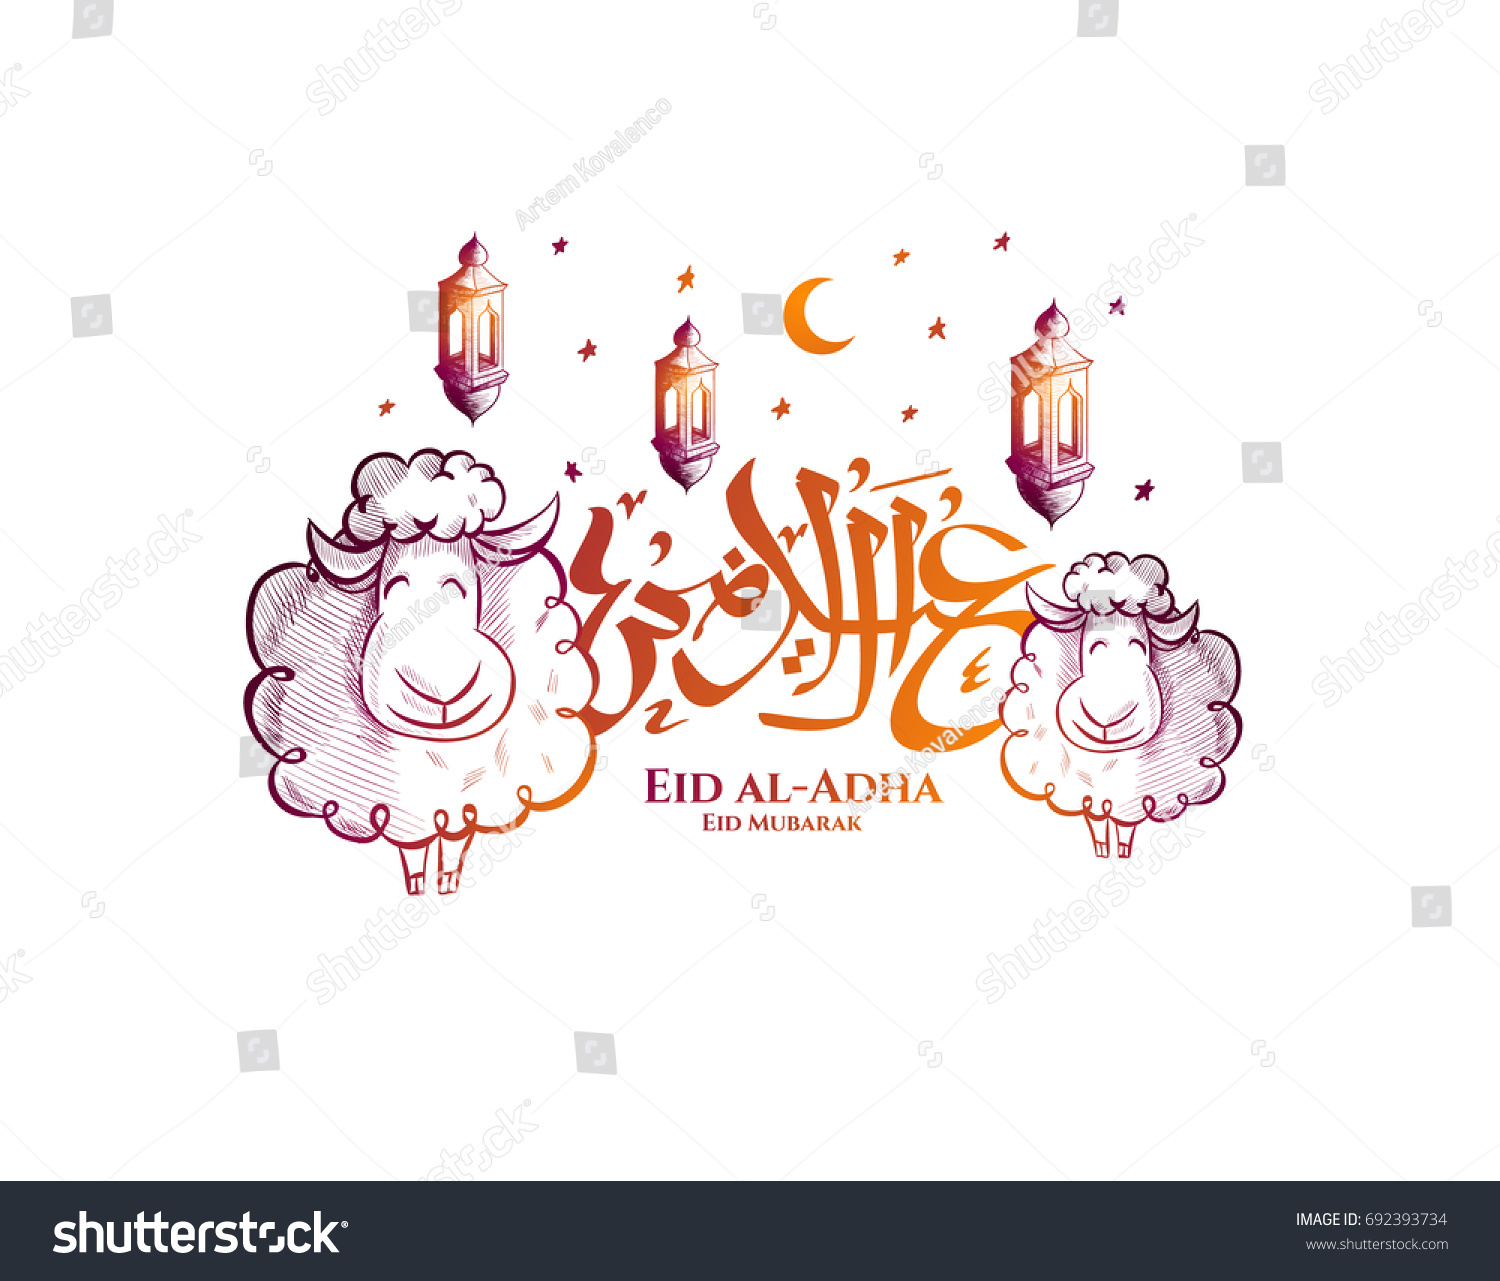 vector illustration. Muslim holiday Eid al-Adha. the sacrifice a ram or white and black sheep. graphic design decoration kurban bayrami. month lamb and a lamp.Translation from Arabic: Eid al-Adha #692393734